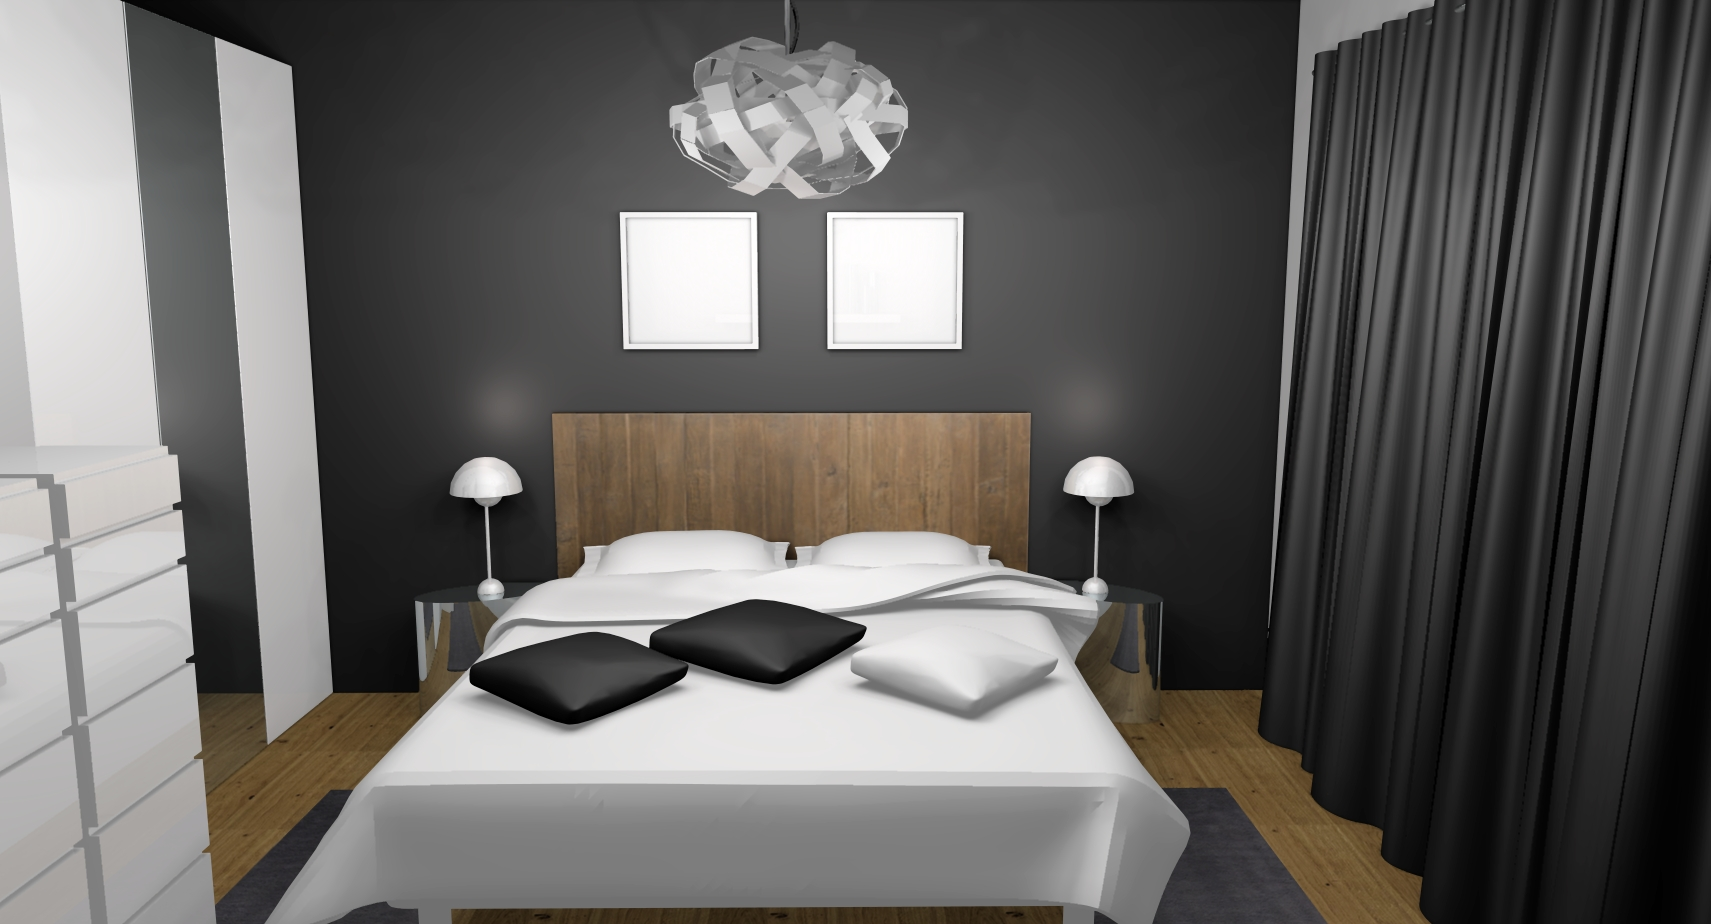 deco chambre vtt 130725 la meilleure. Black Bedroom Furniture Sets. Home Design Ideas